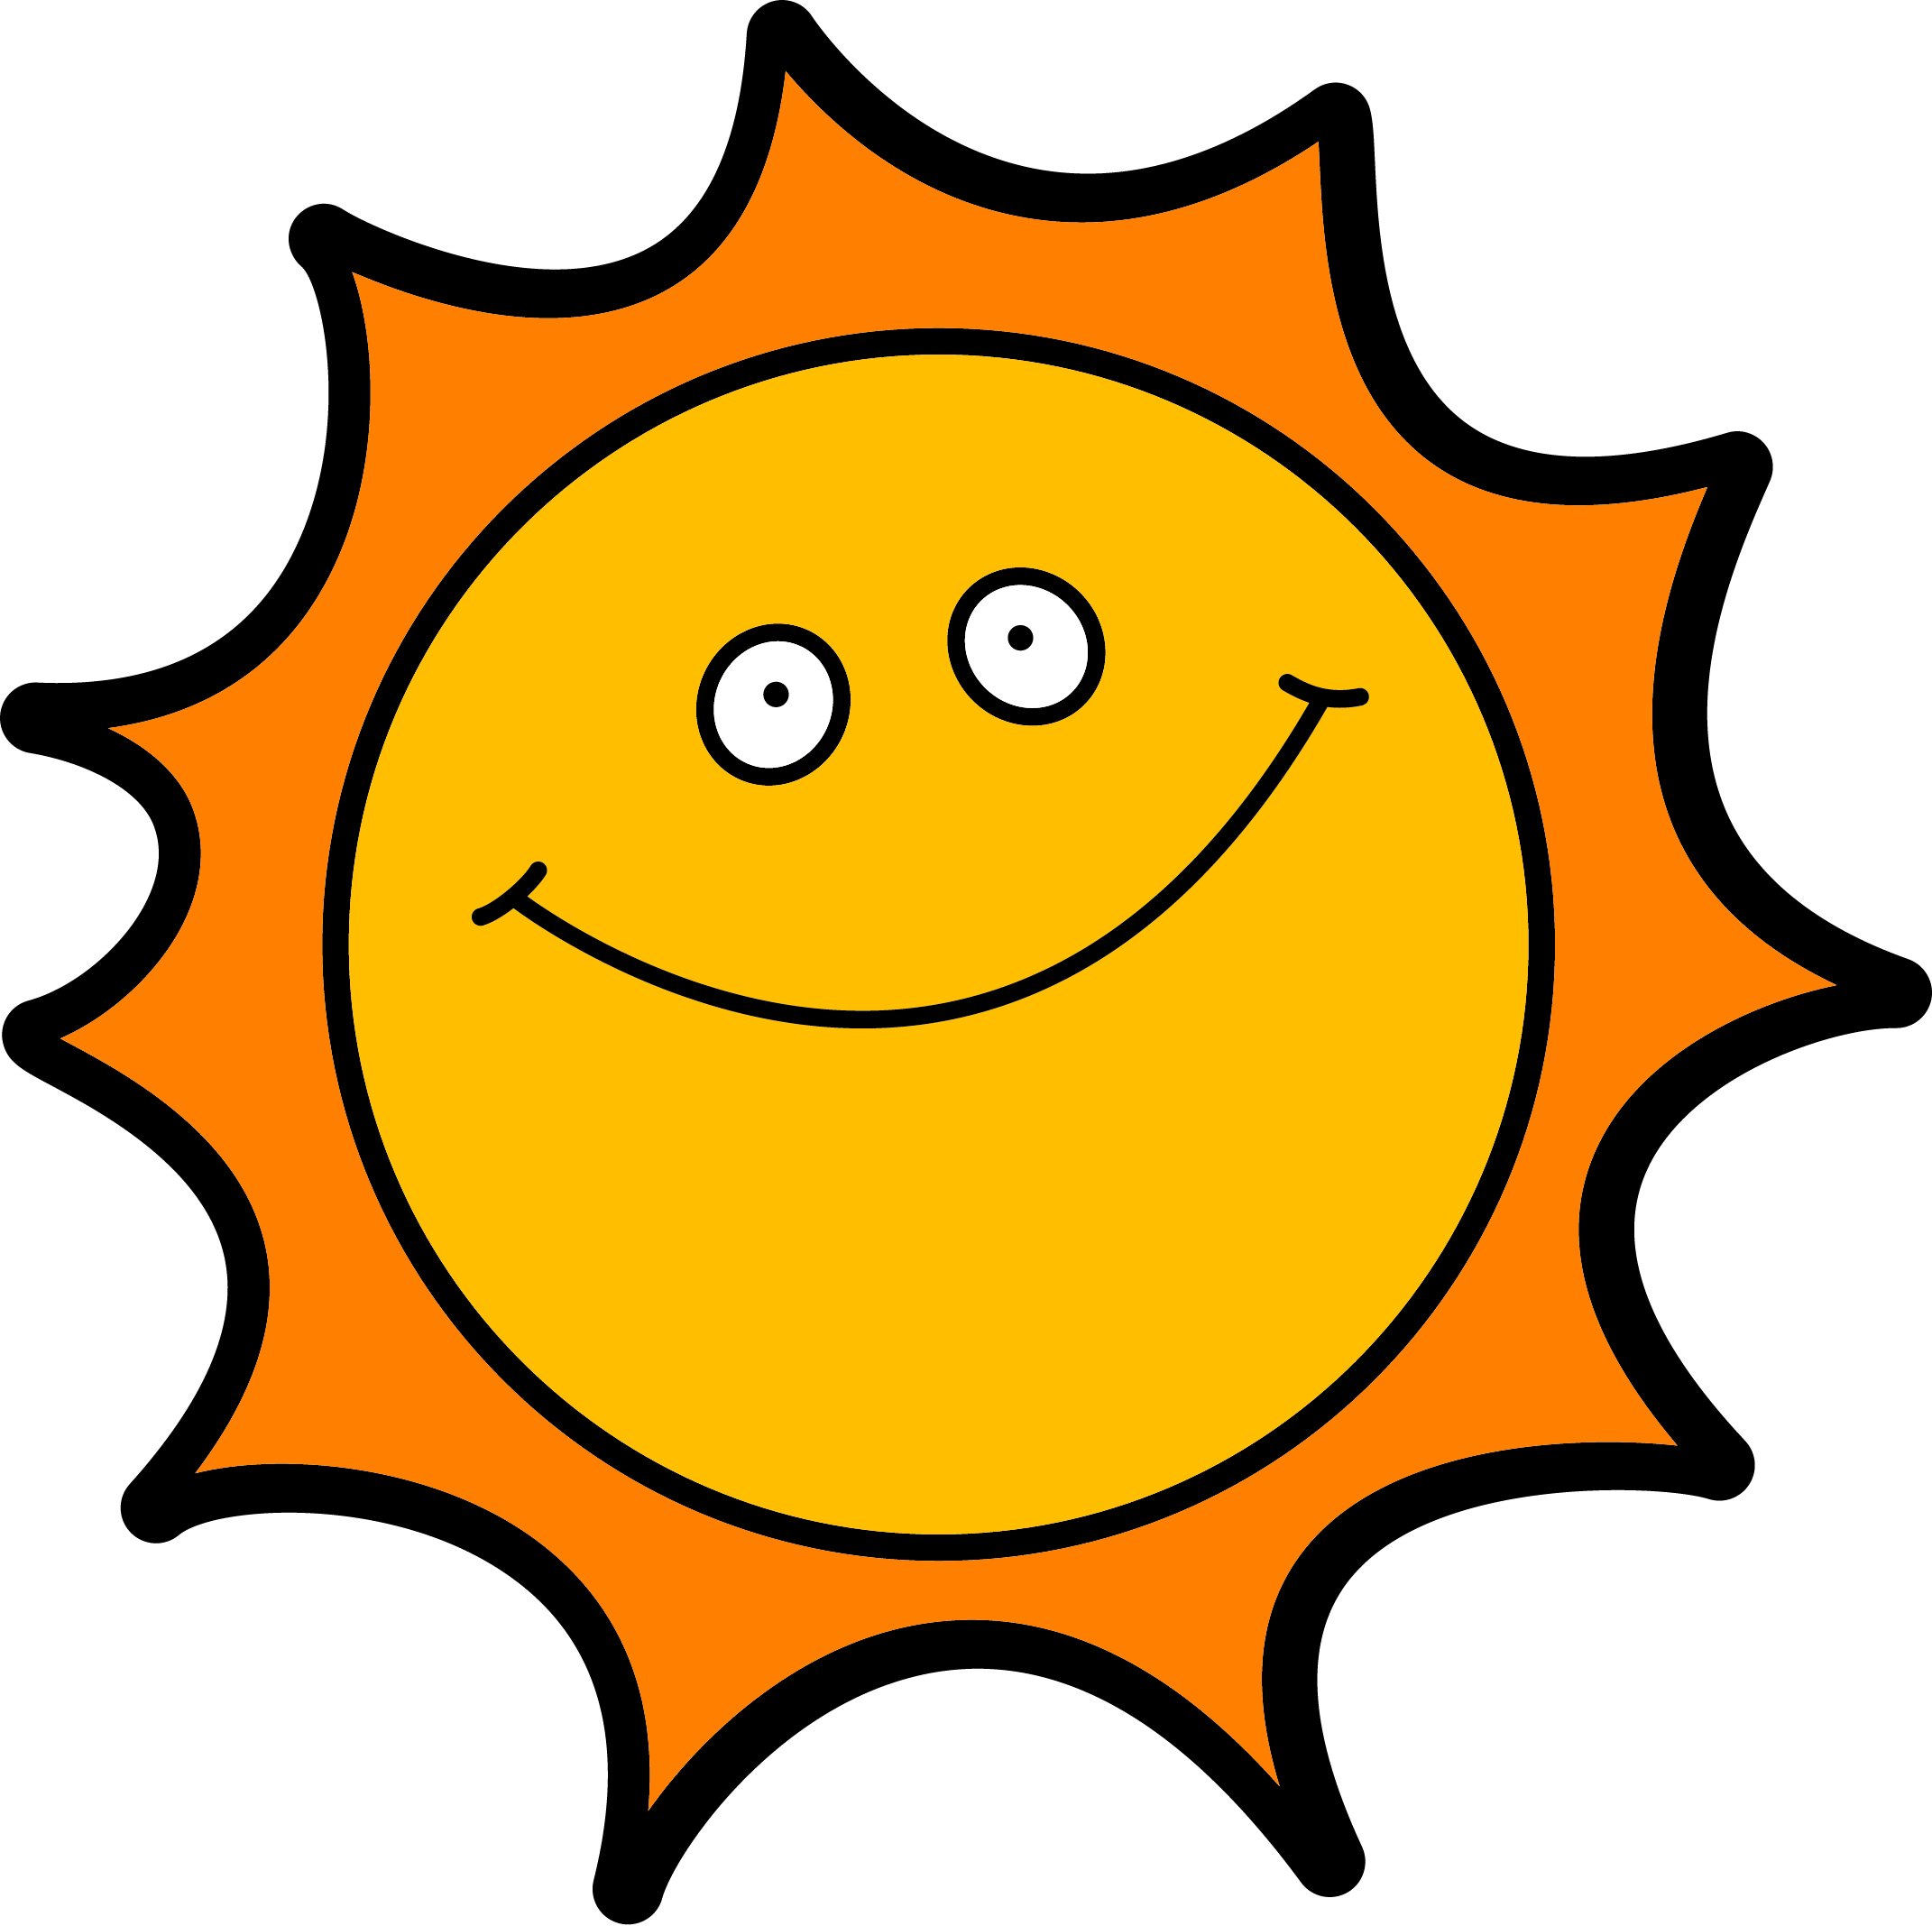 Hot Sun Images - Clipart Library | Clipa-Hot Sun Images - Clipart library | Clipart library - Free Clipart Images-11